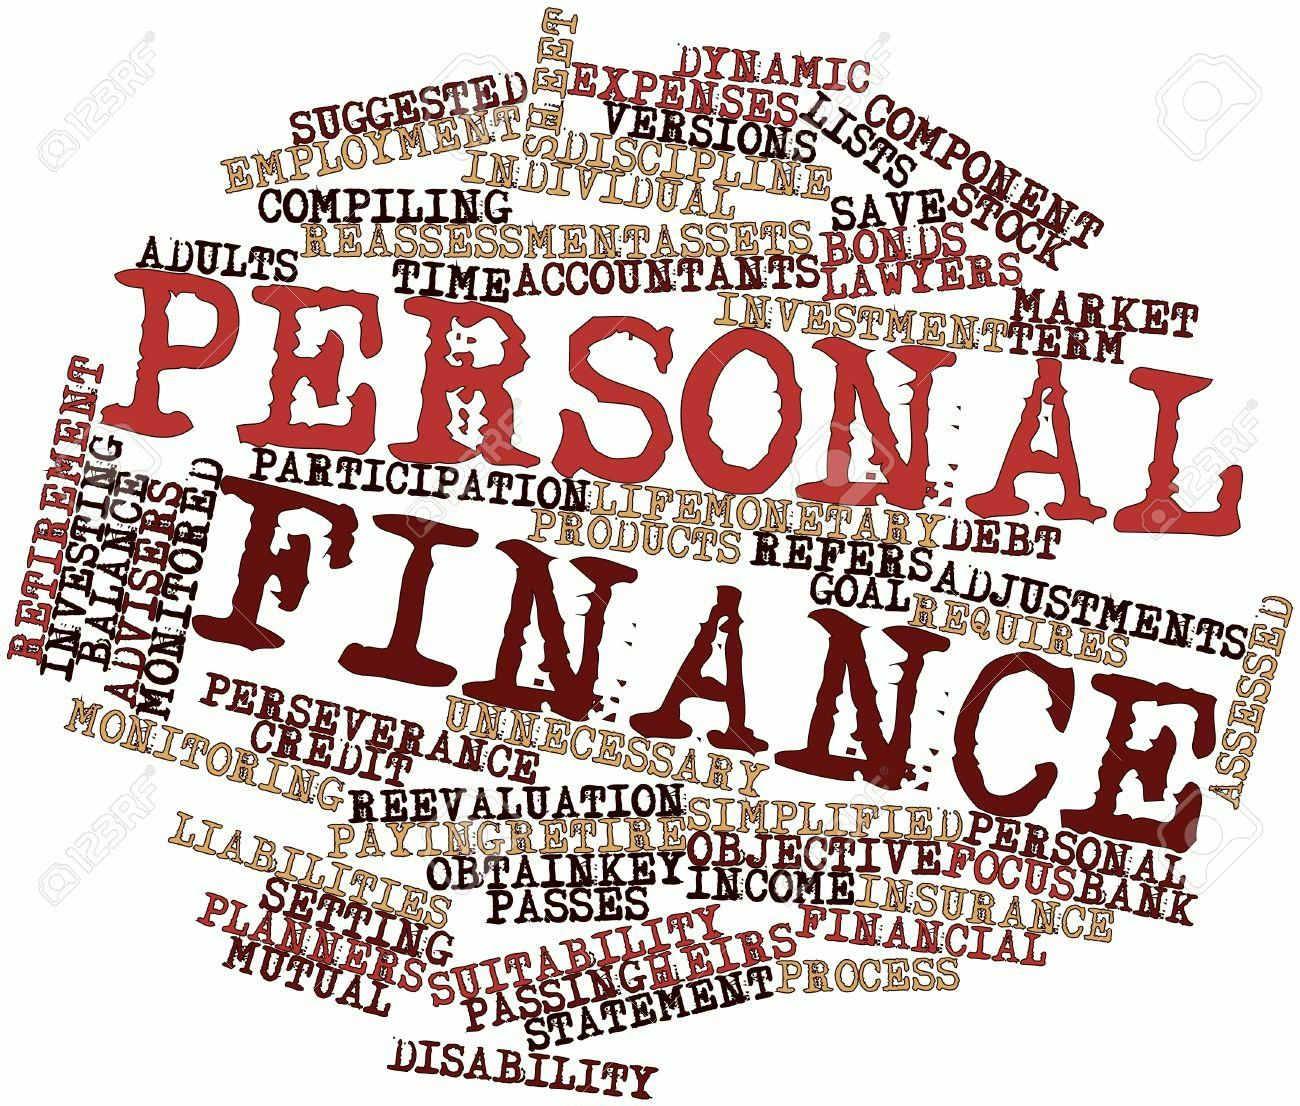 Personal Wealth Group